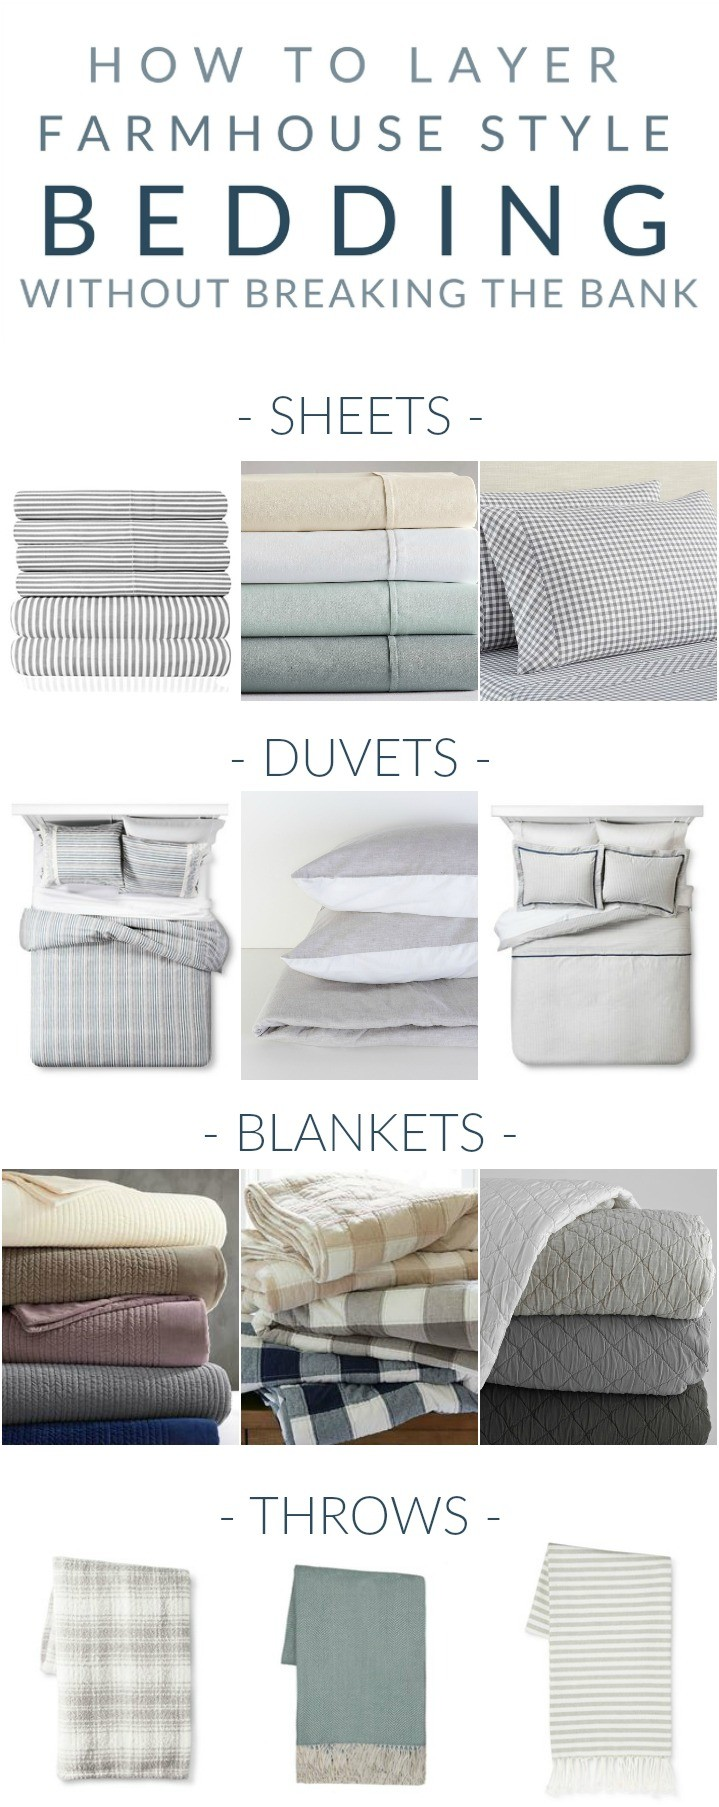 Farmhouse Bedding My Favorite Pieces For Layering That Wont